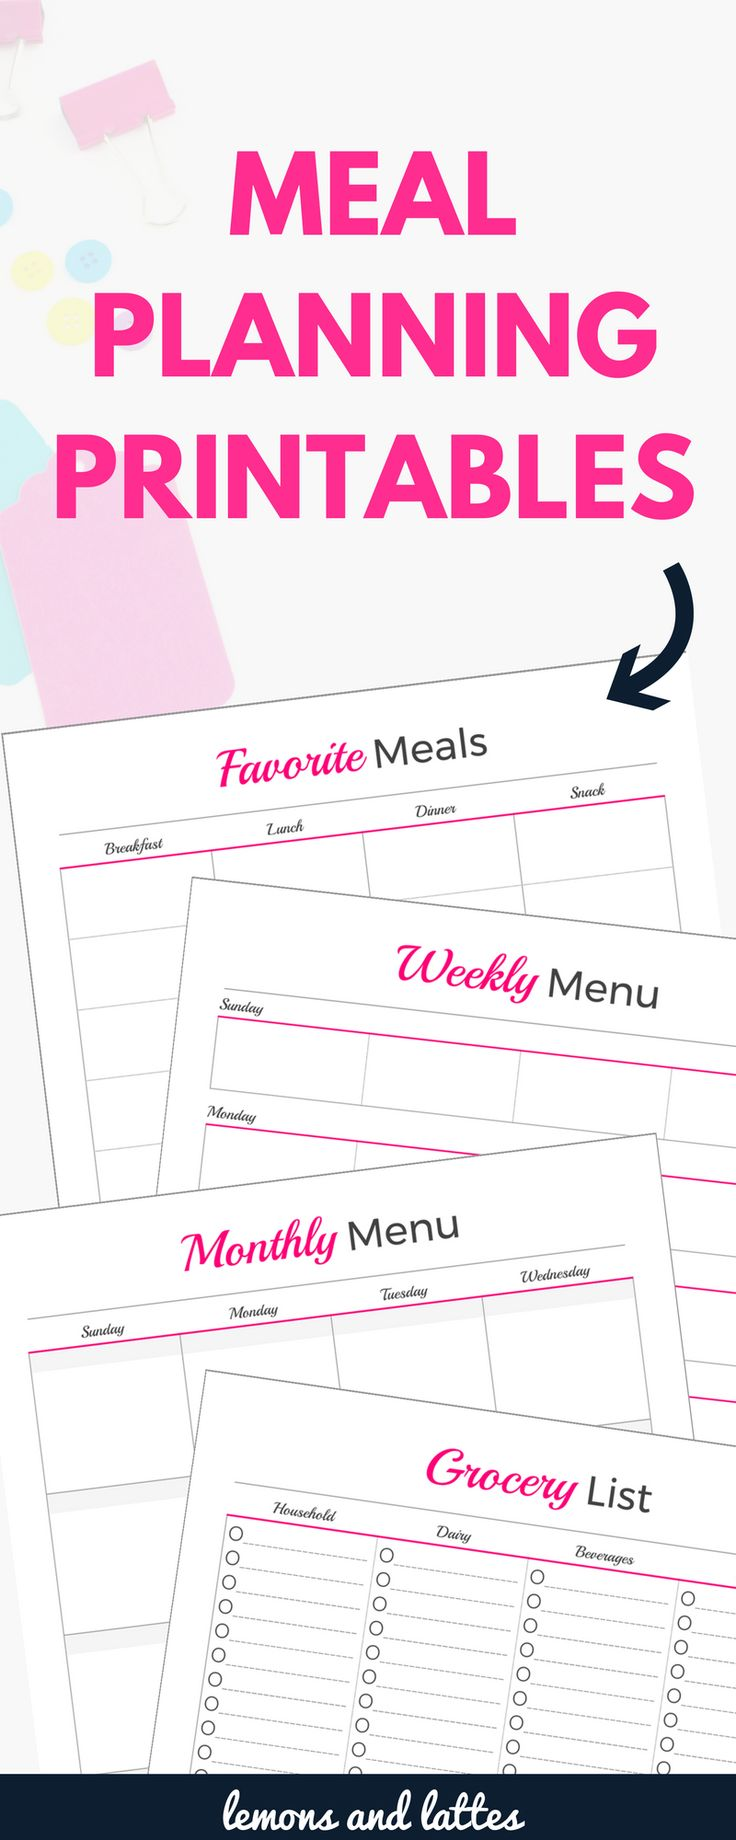 Overwhelmed with what's for dinner? I'm sharing 5 meal planning printables that will help you organize your meal planning once and for all. Sign up for my blog waiting list to snag them! Weekly meal planner template with grocery list, monthly meal planner template